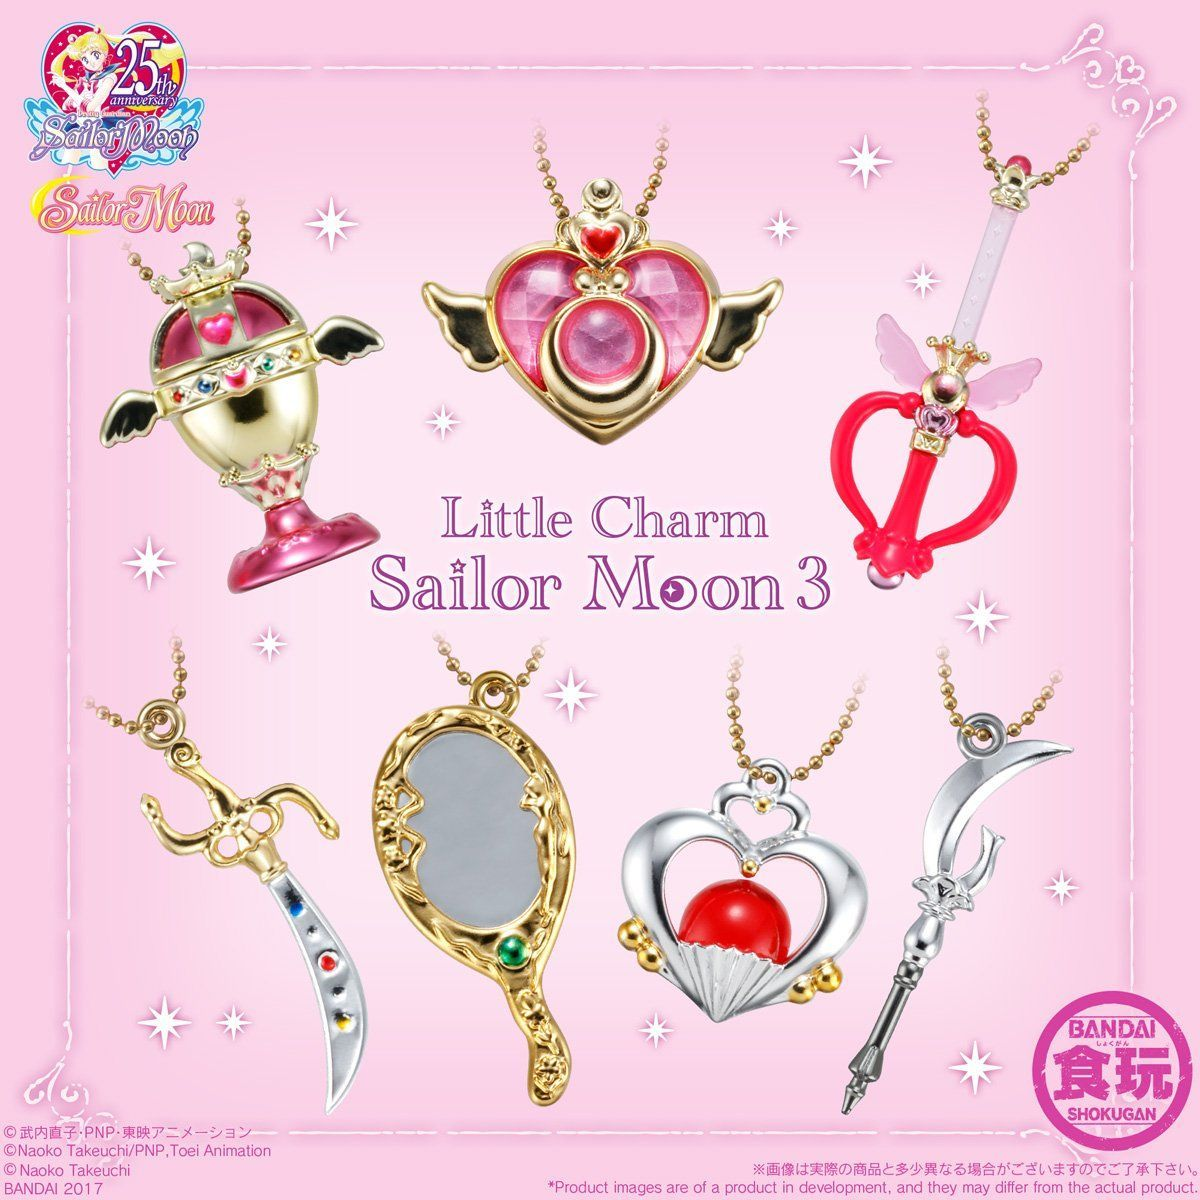 Sailor Moon Little Charm 3